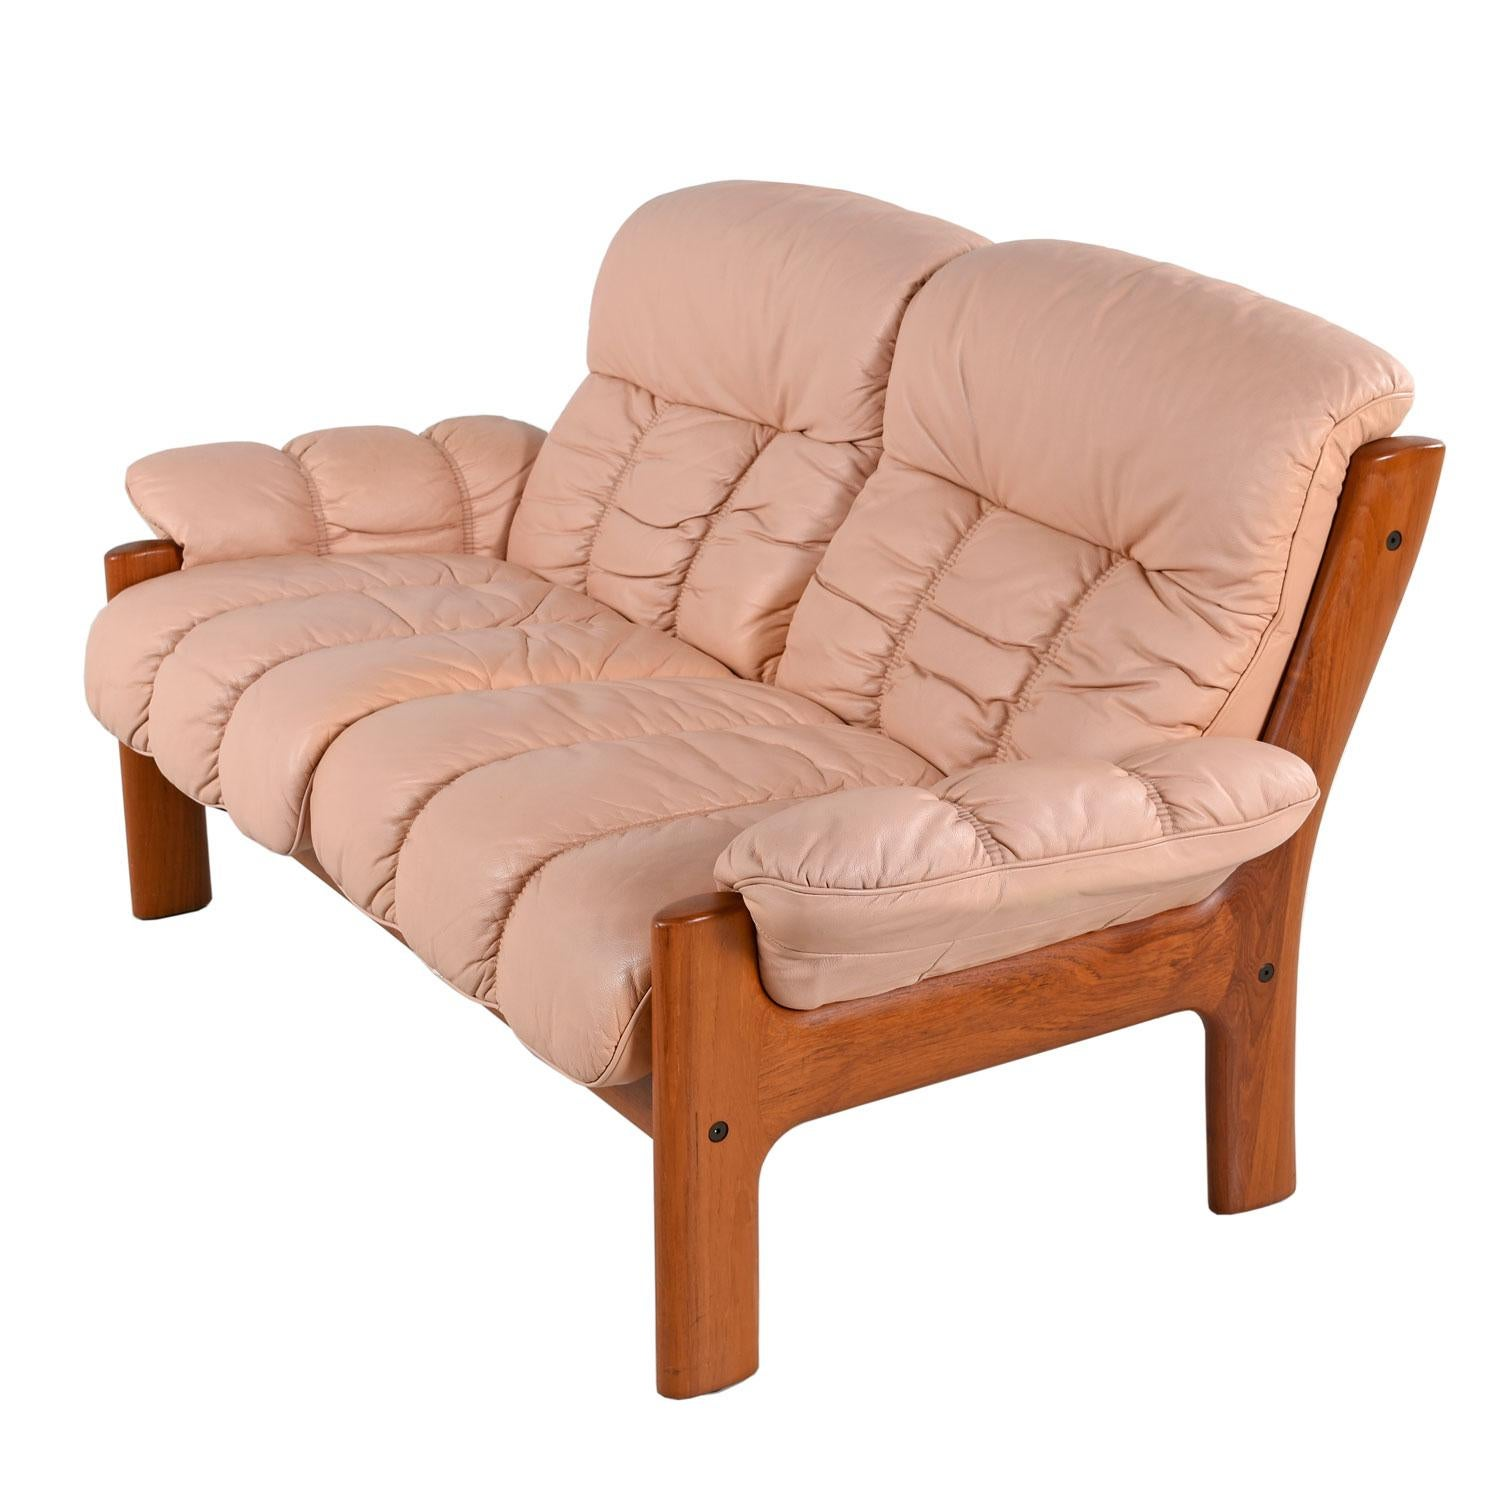 Stresless Pale Rose Ekornes Stressless Montana Solid Teak Loveseat Sofa